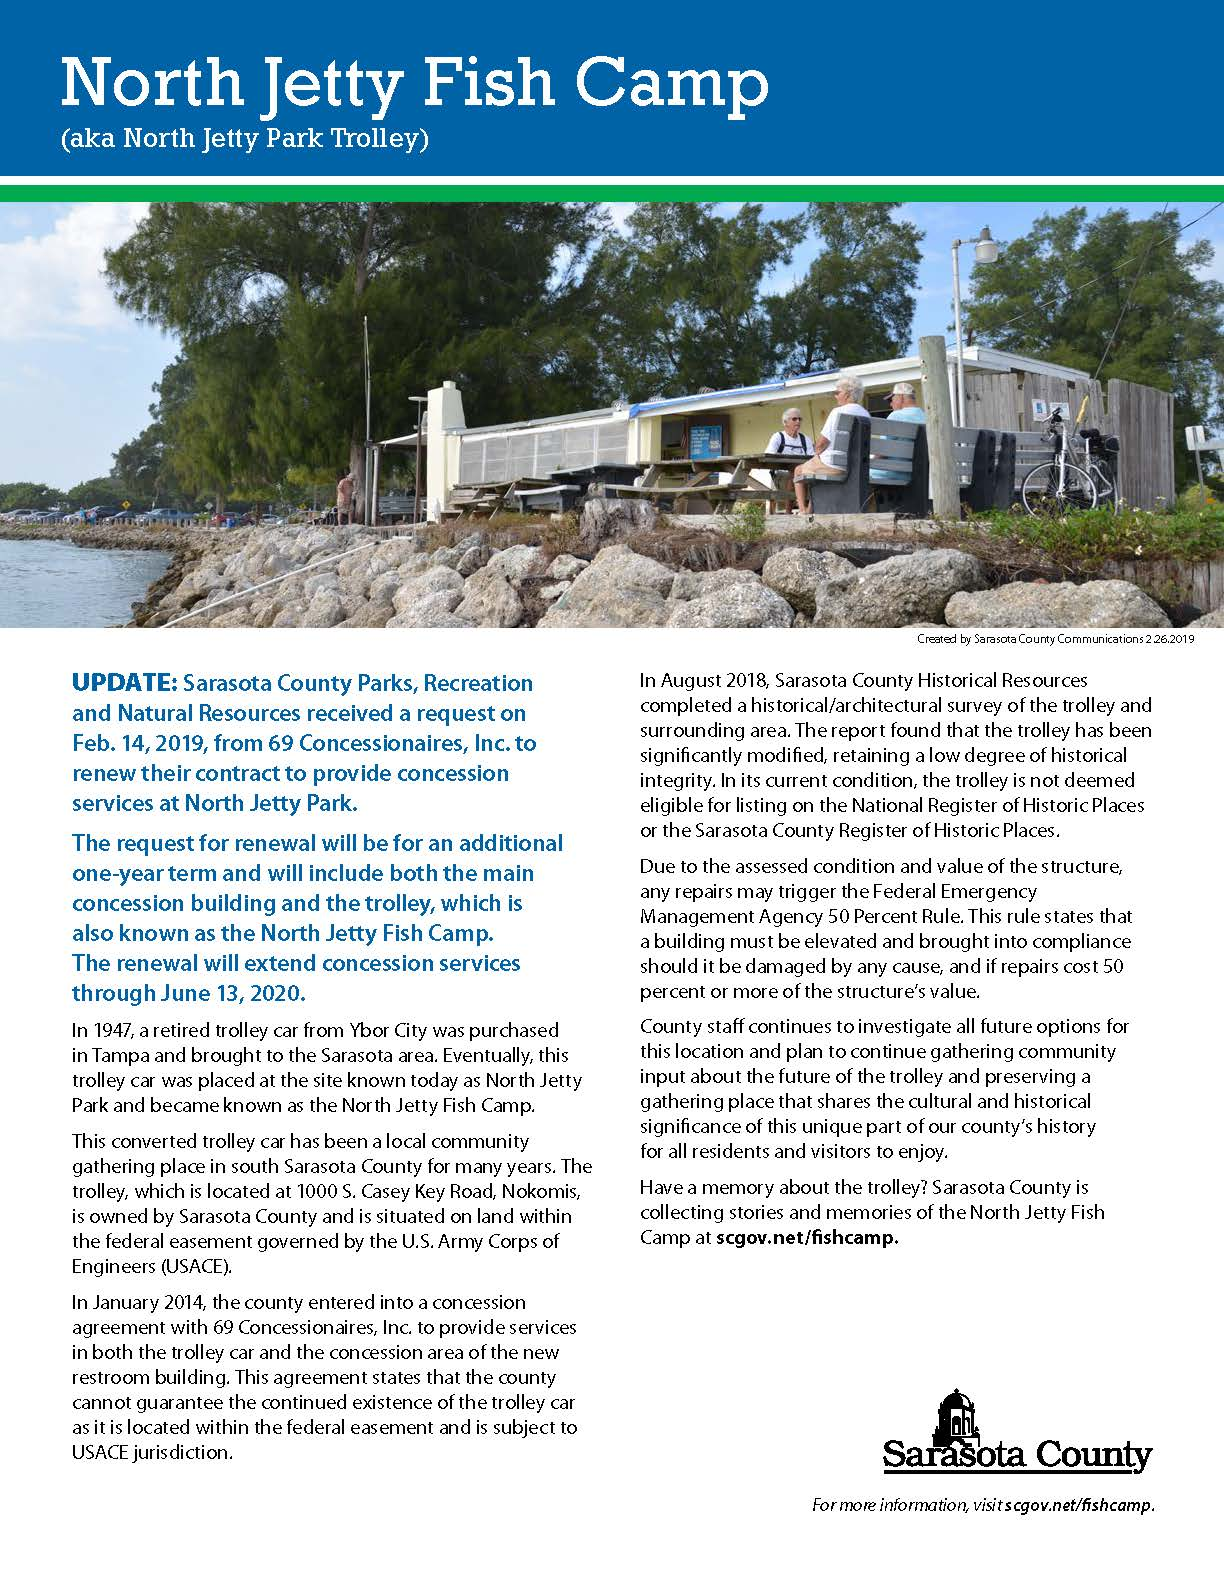 North Jetty Fish Camp Sarasota County Fl Repairing Your Old Equipment Can Lead To Substantial Savings Downloadable Fact Sheet